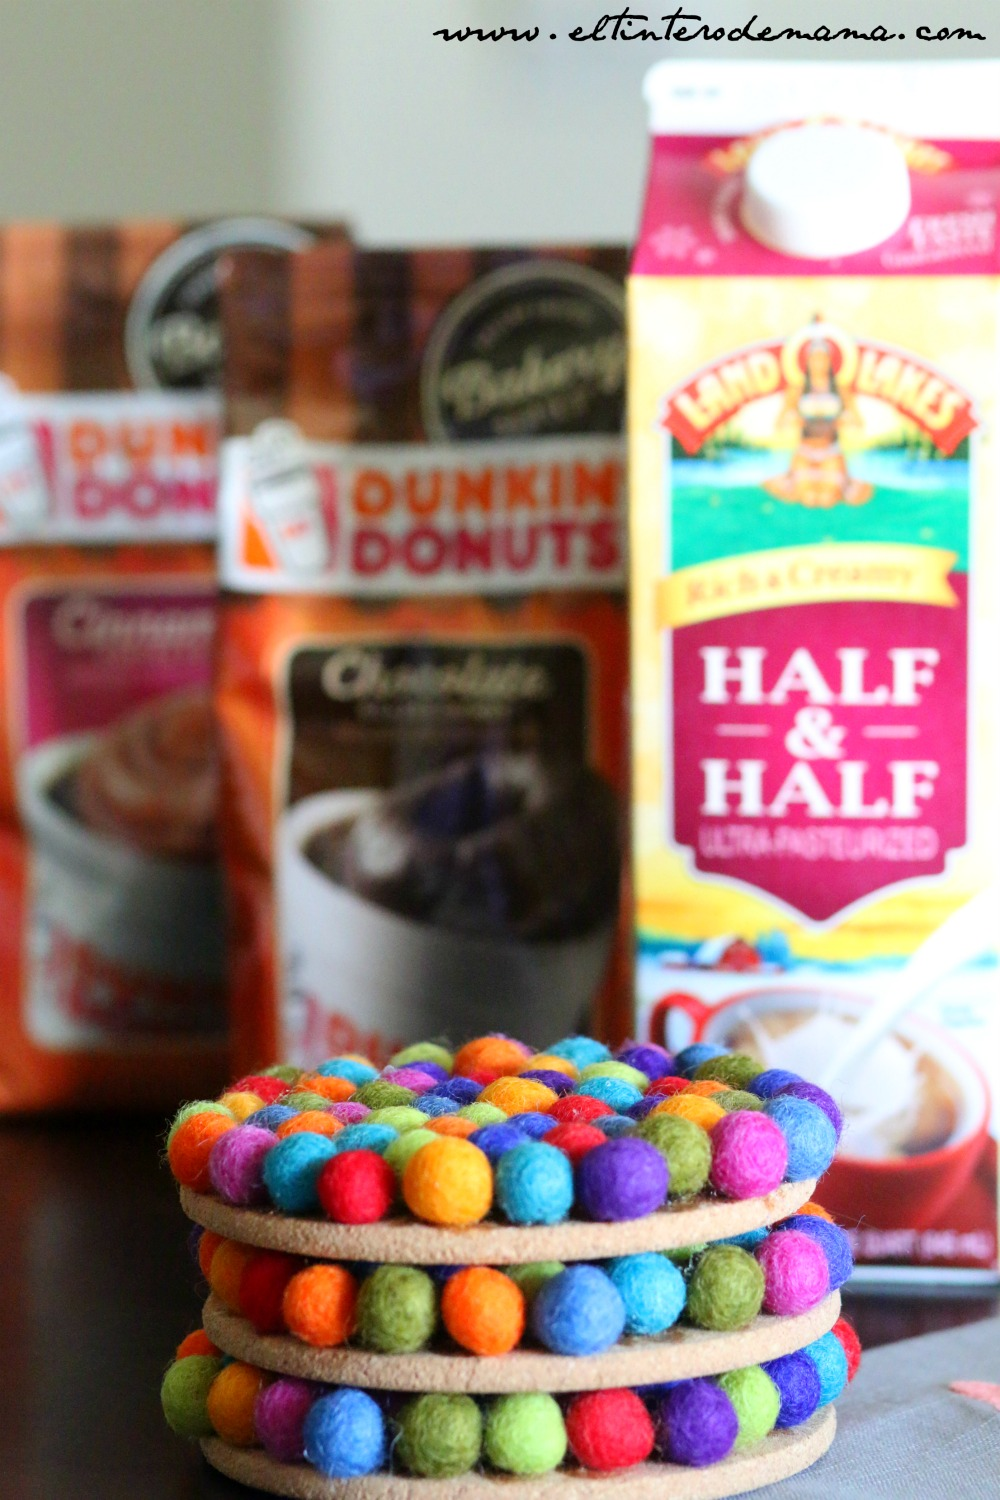 tutorial-with-Dunkin-Donuts-Coffee-and-WhiteWave-Creamers